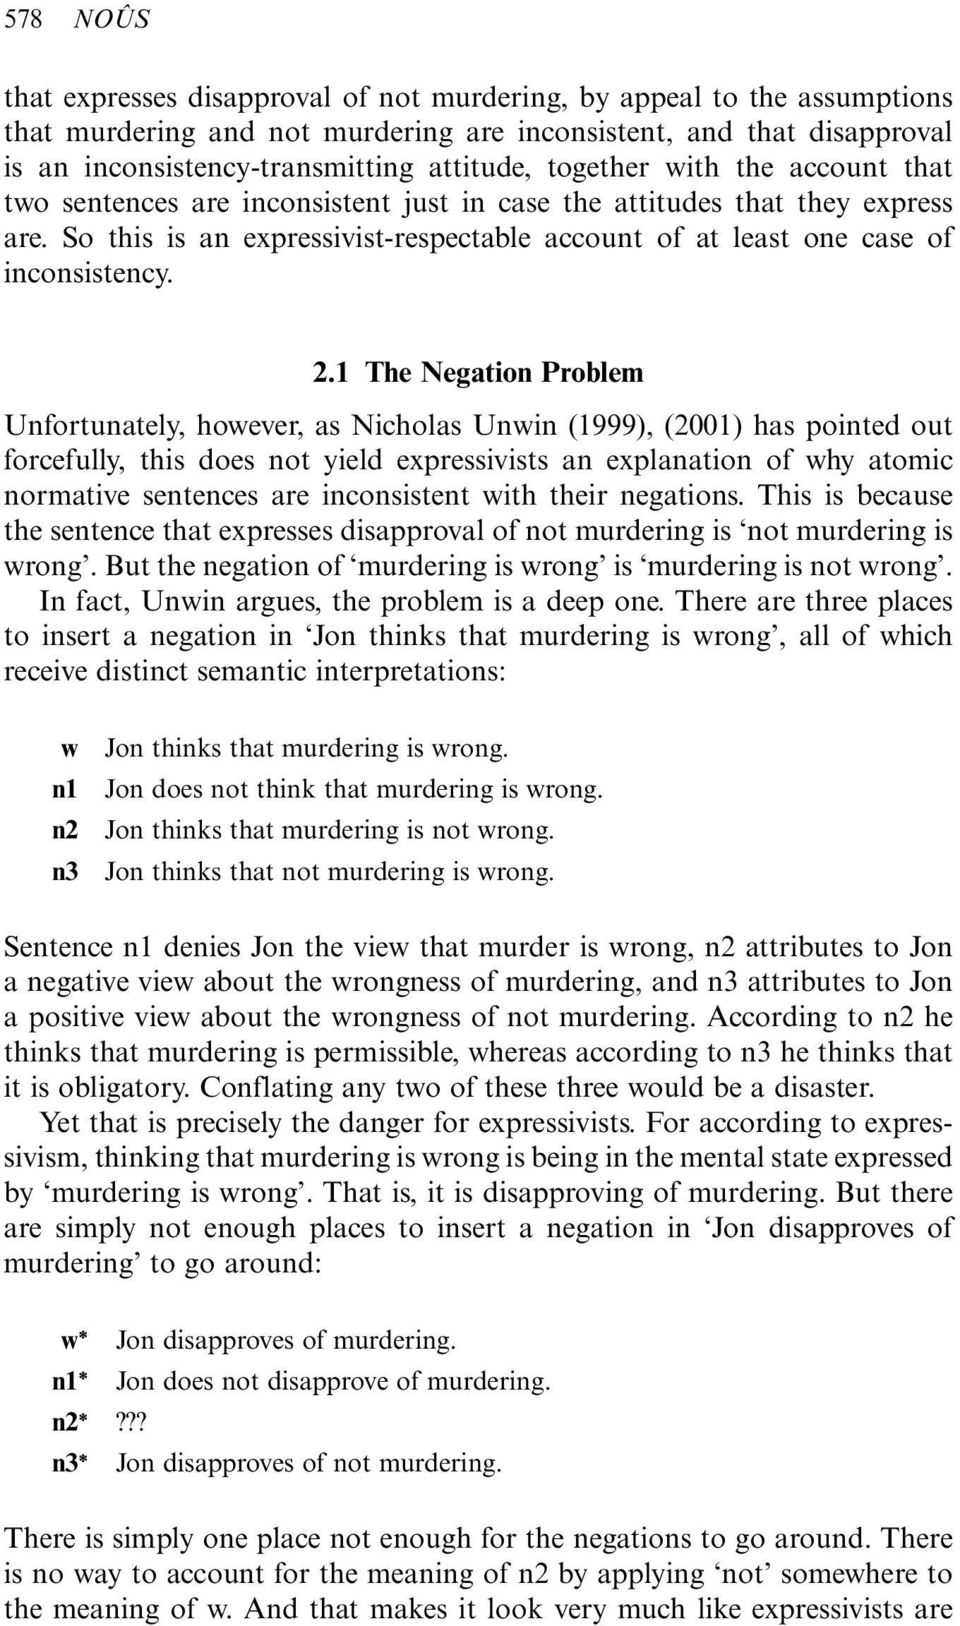 1 The Negation Problem Unfortunately, however, as Nicholas Unwin (1999), (2001) has pointed out forcefully, this does not yield expressivists an explanation of why atomic normative sentences are